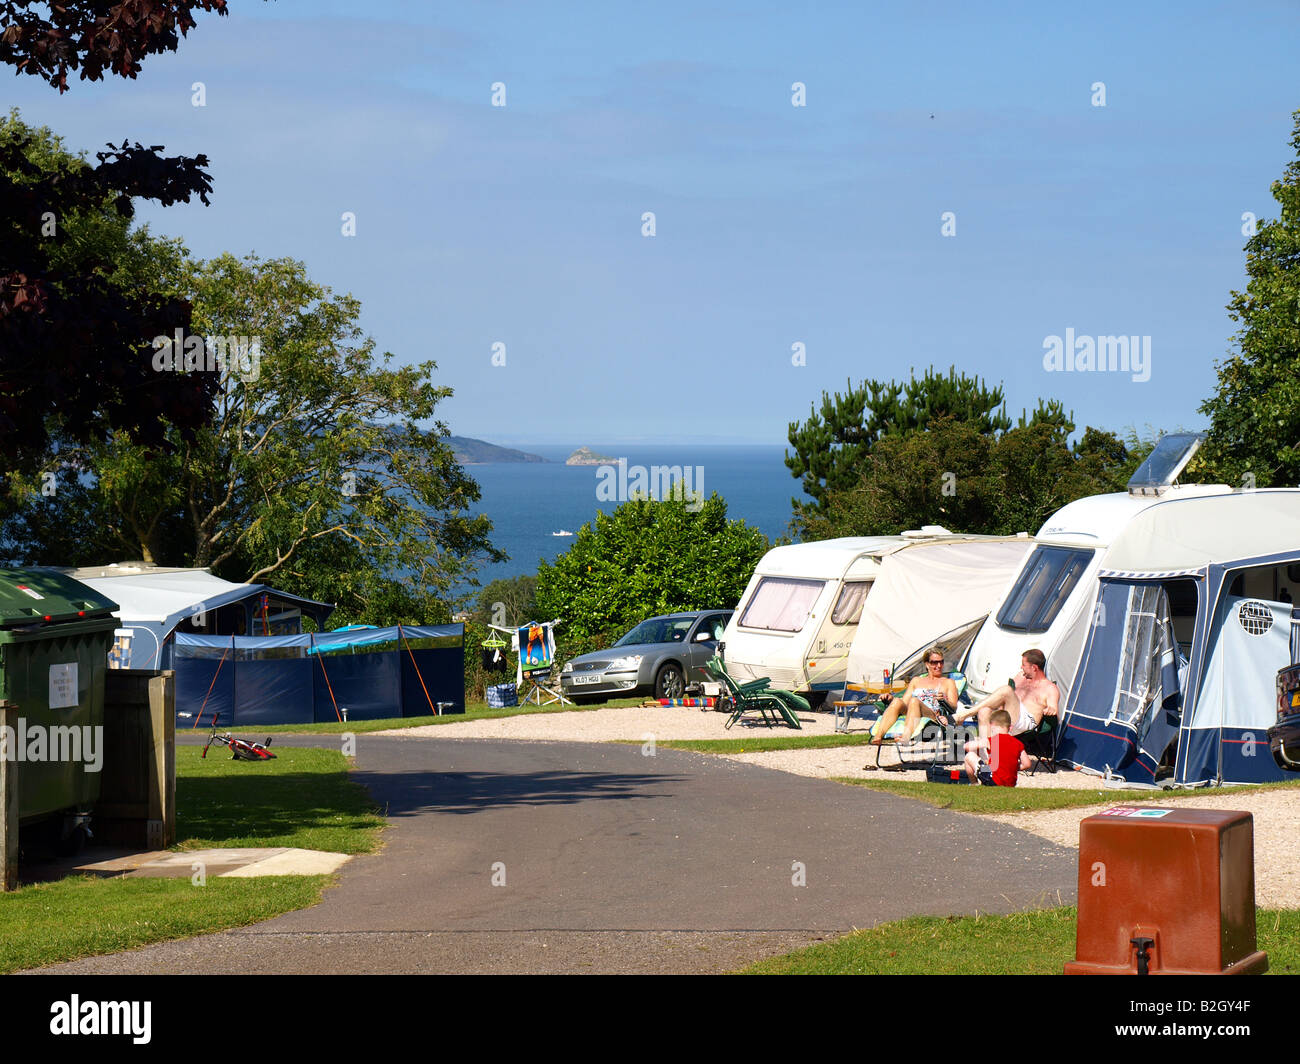 Beverley park campsite with views over Torbay at Goodrington,Paignton,The english Reviera,Devon,uk. - Stock Image